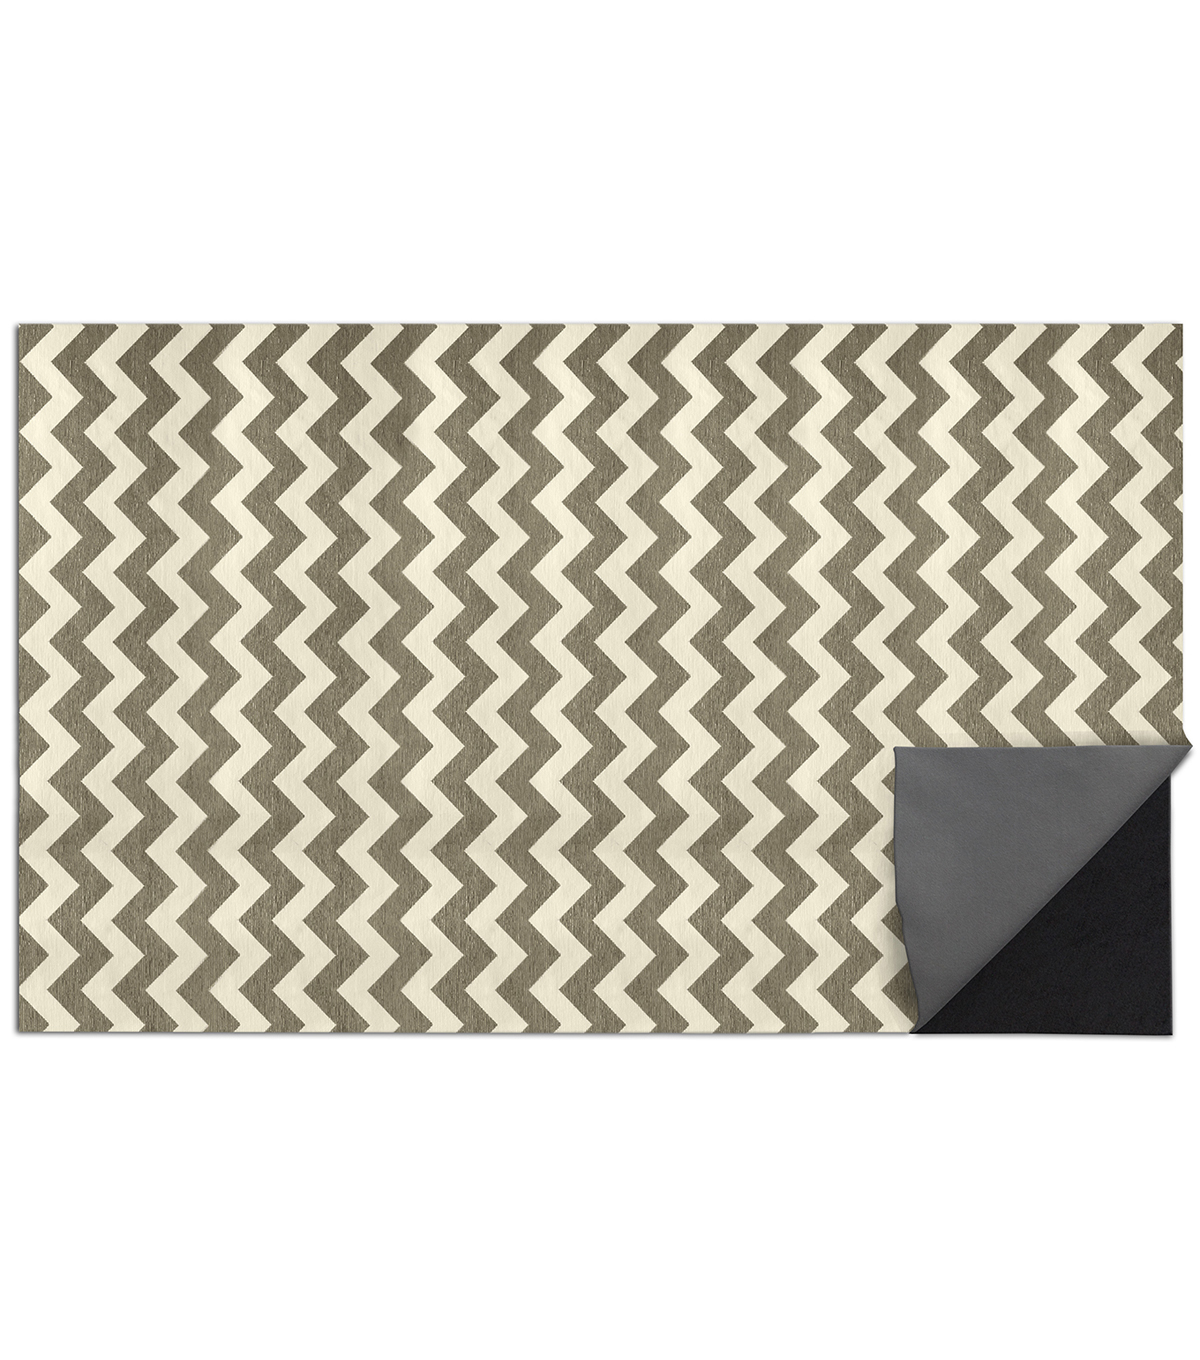 5x7\u0027 Ruggable 2pc Washable Rug System-Chevron Rich Grey  & White